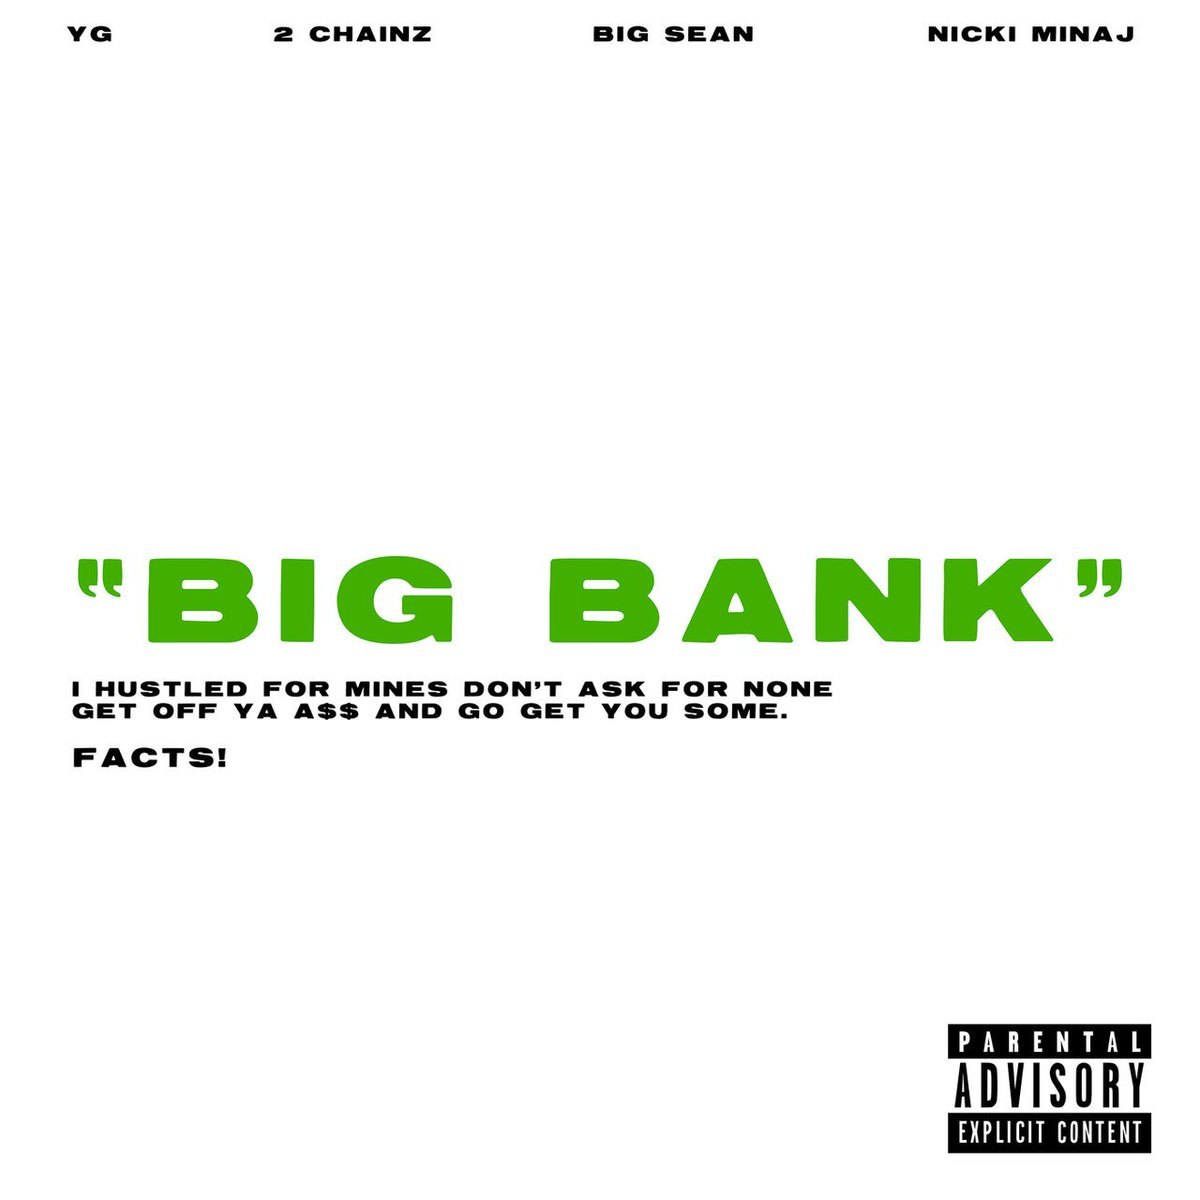 Listen: @YG Feat. @2Chainz, @BigSean & @NICKIMINAJ 'Big Bank' https://t.co/AD8kg3eJG9   https://t.co/qFdubGFJrZ